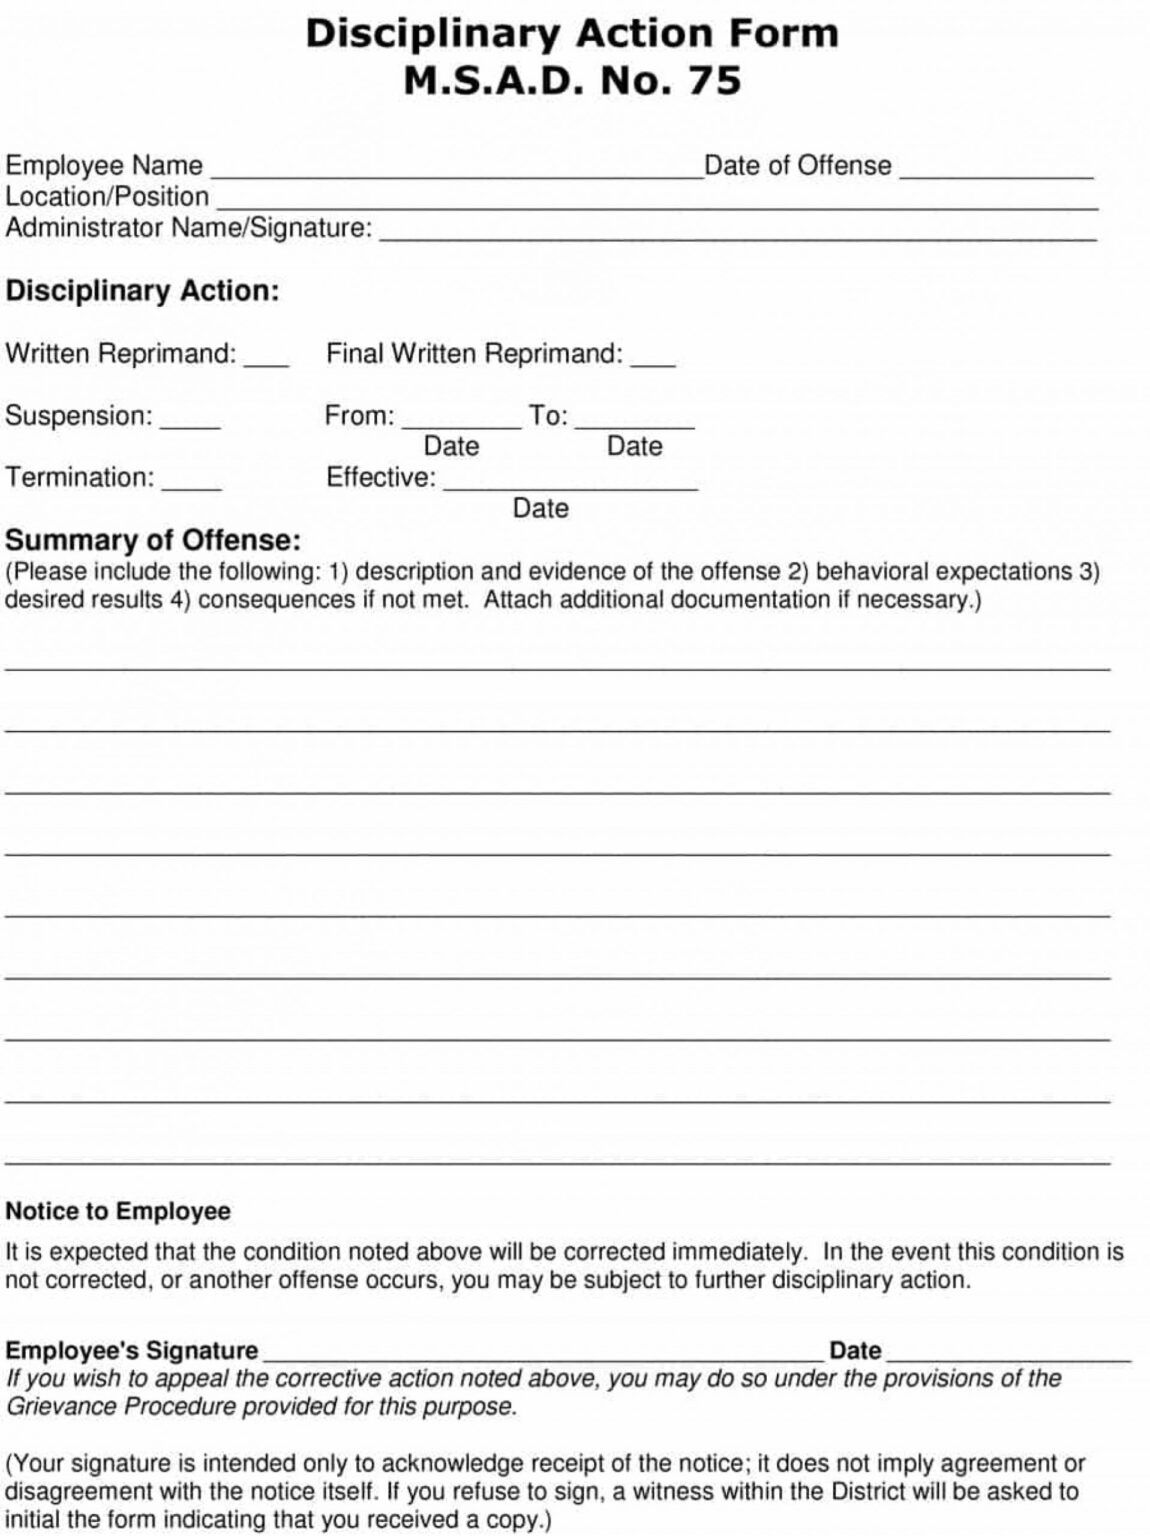 Employee Write Up Form Free Printable Disciplinary Forms In Book Report Template In Spanish Book Report Templates Book Report Report Template